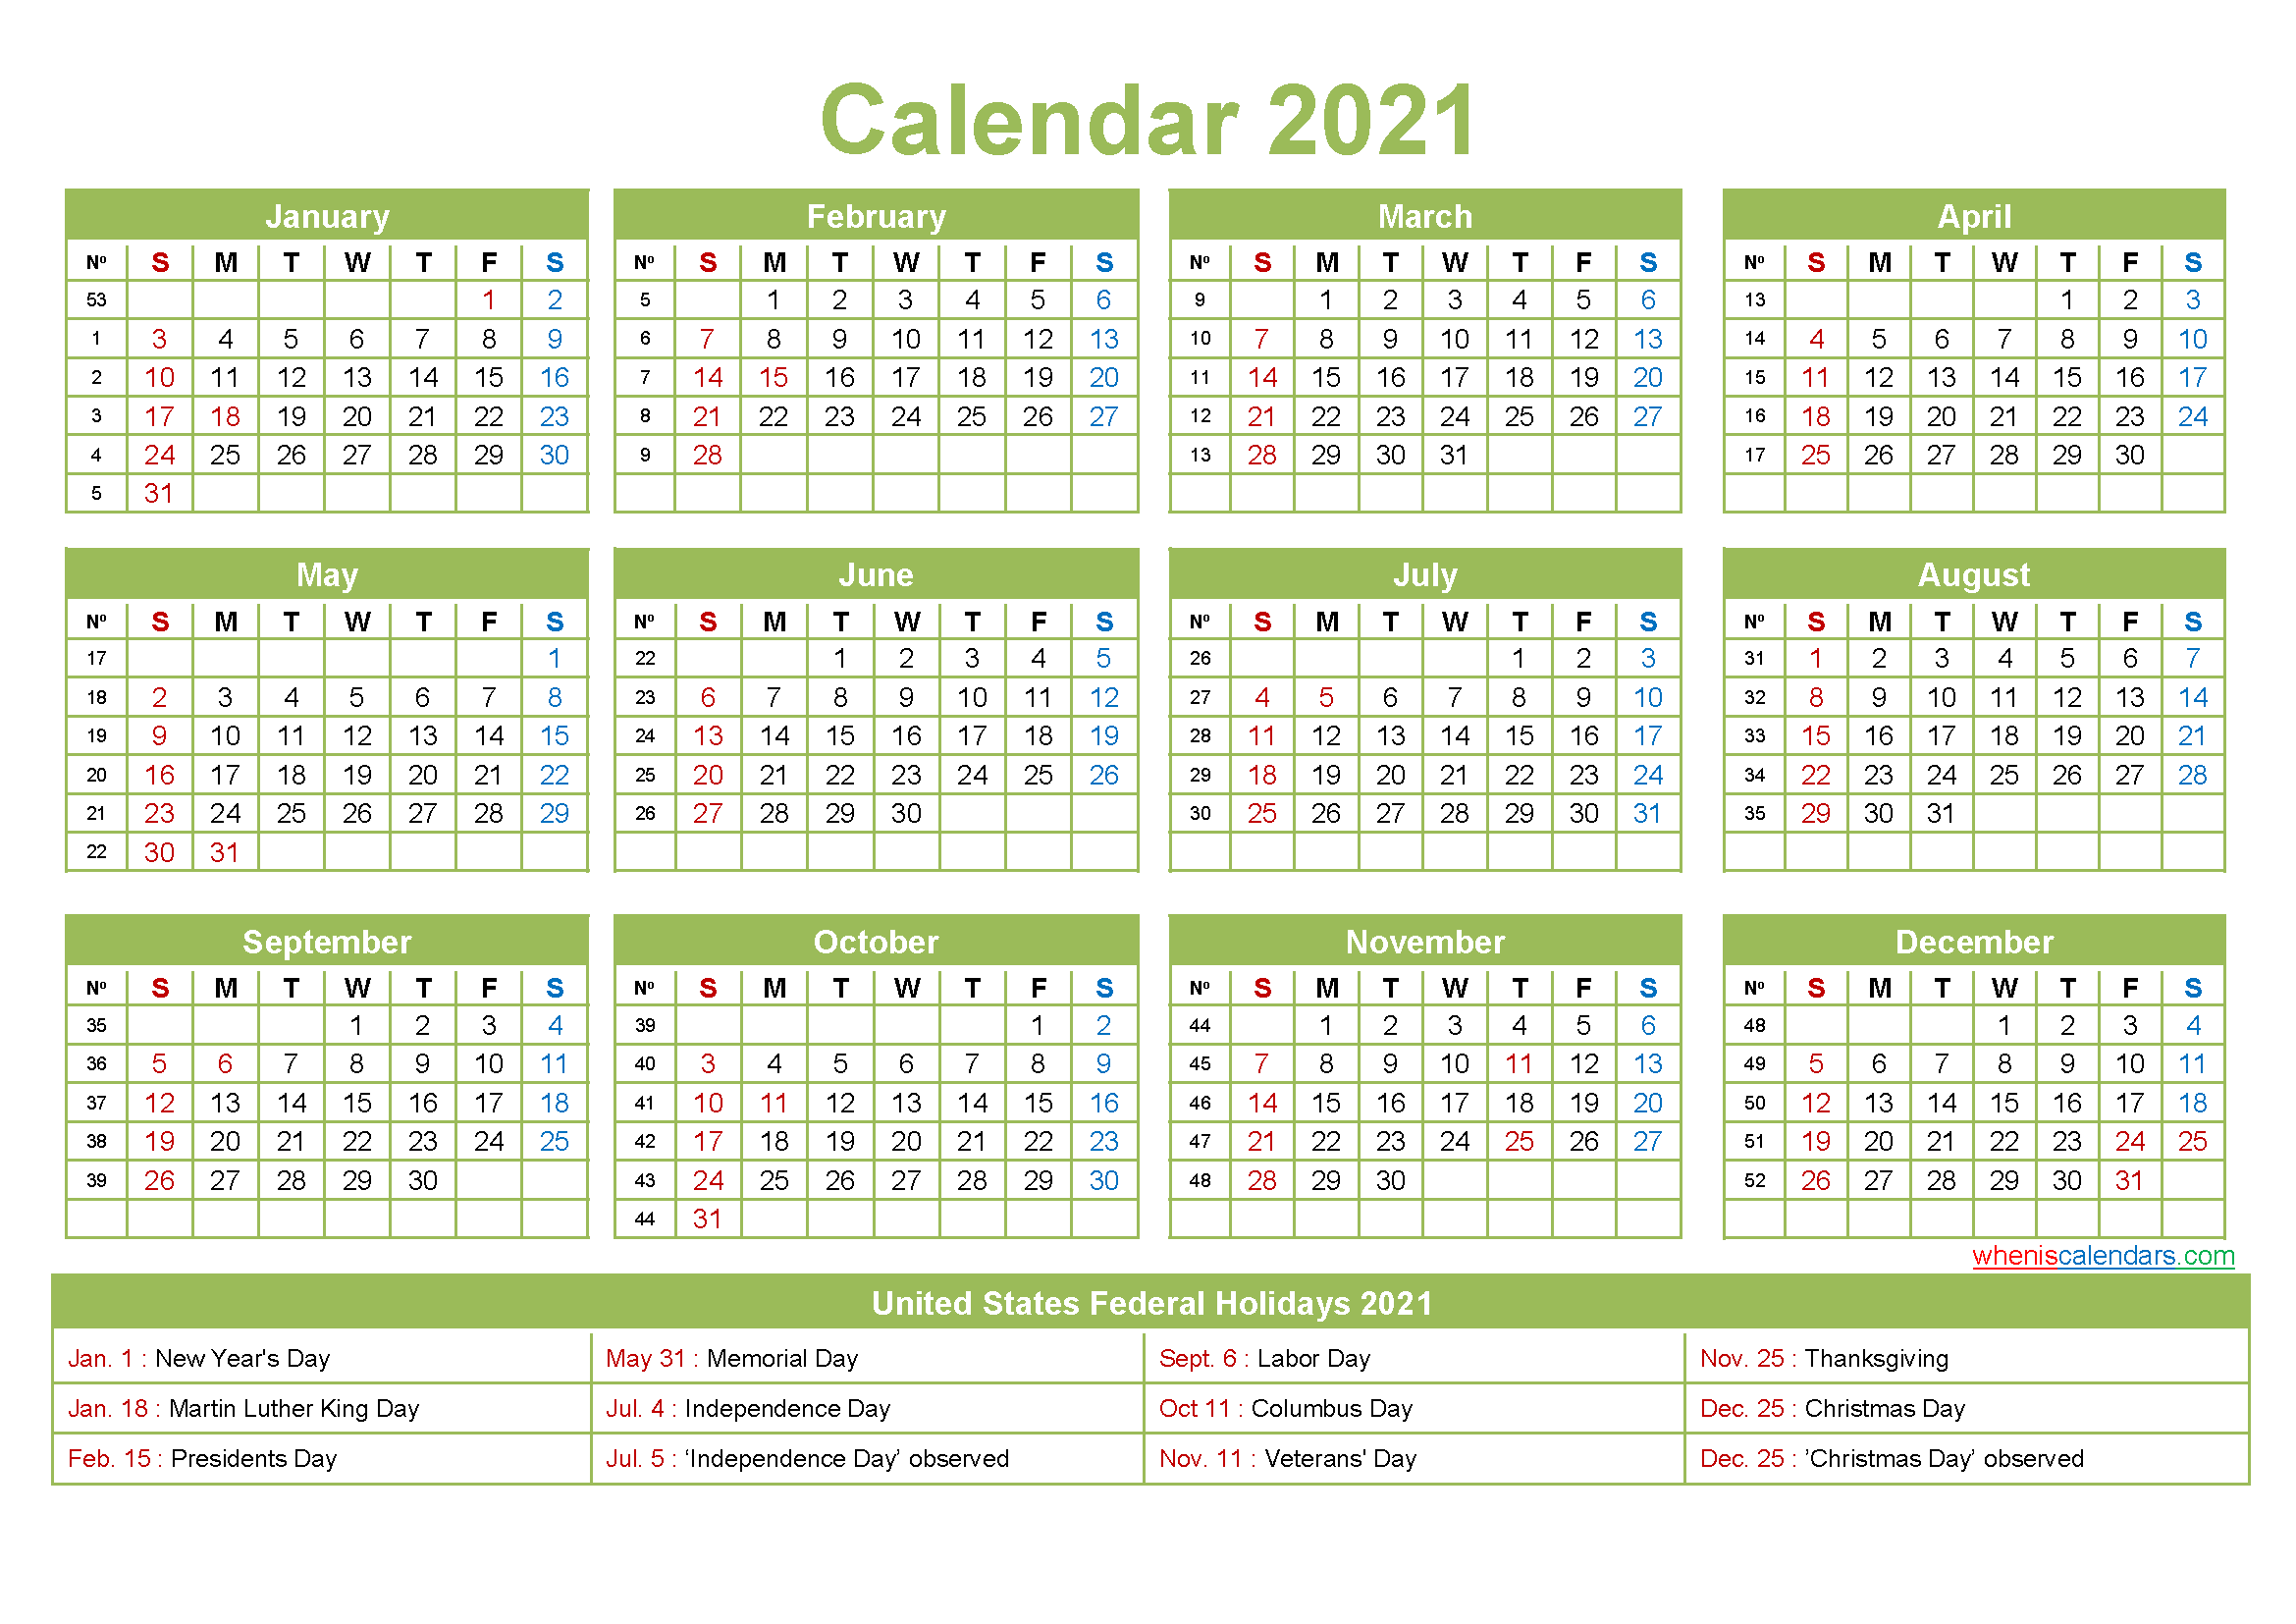 Small Desk Calendar 2021 Small Desk Calendar 2021 with Holidays – Free Printable 2020